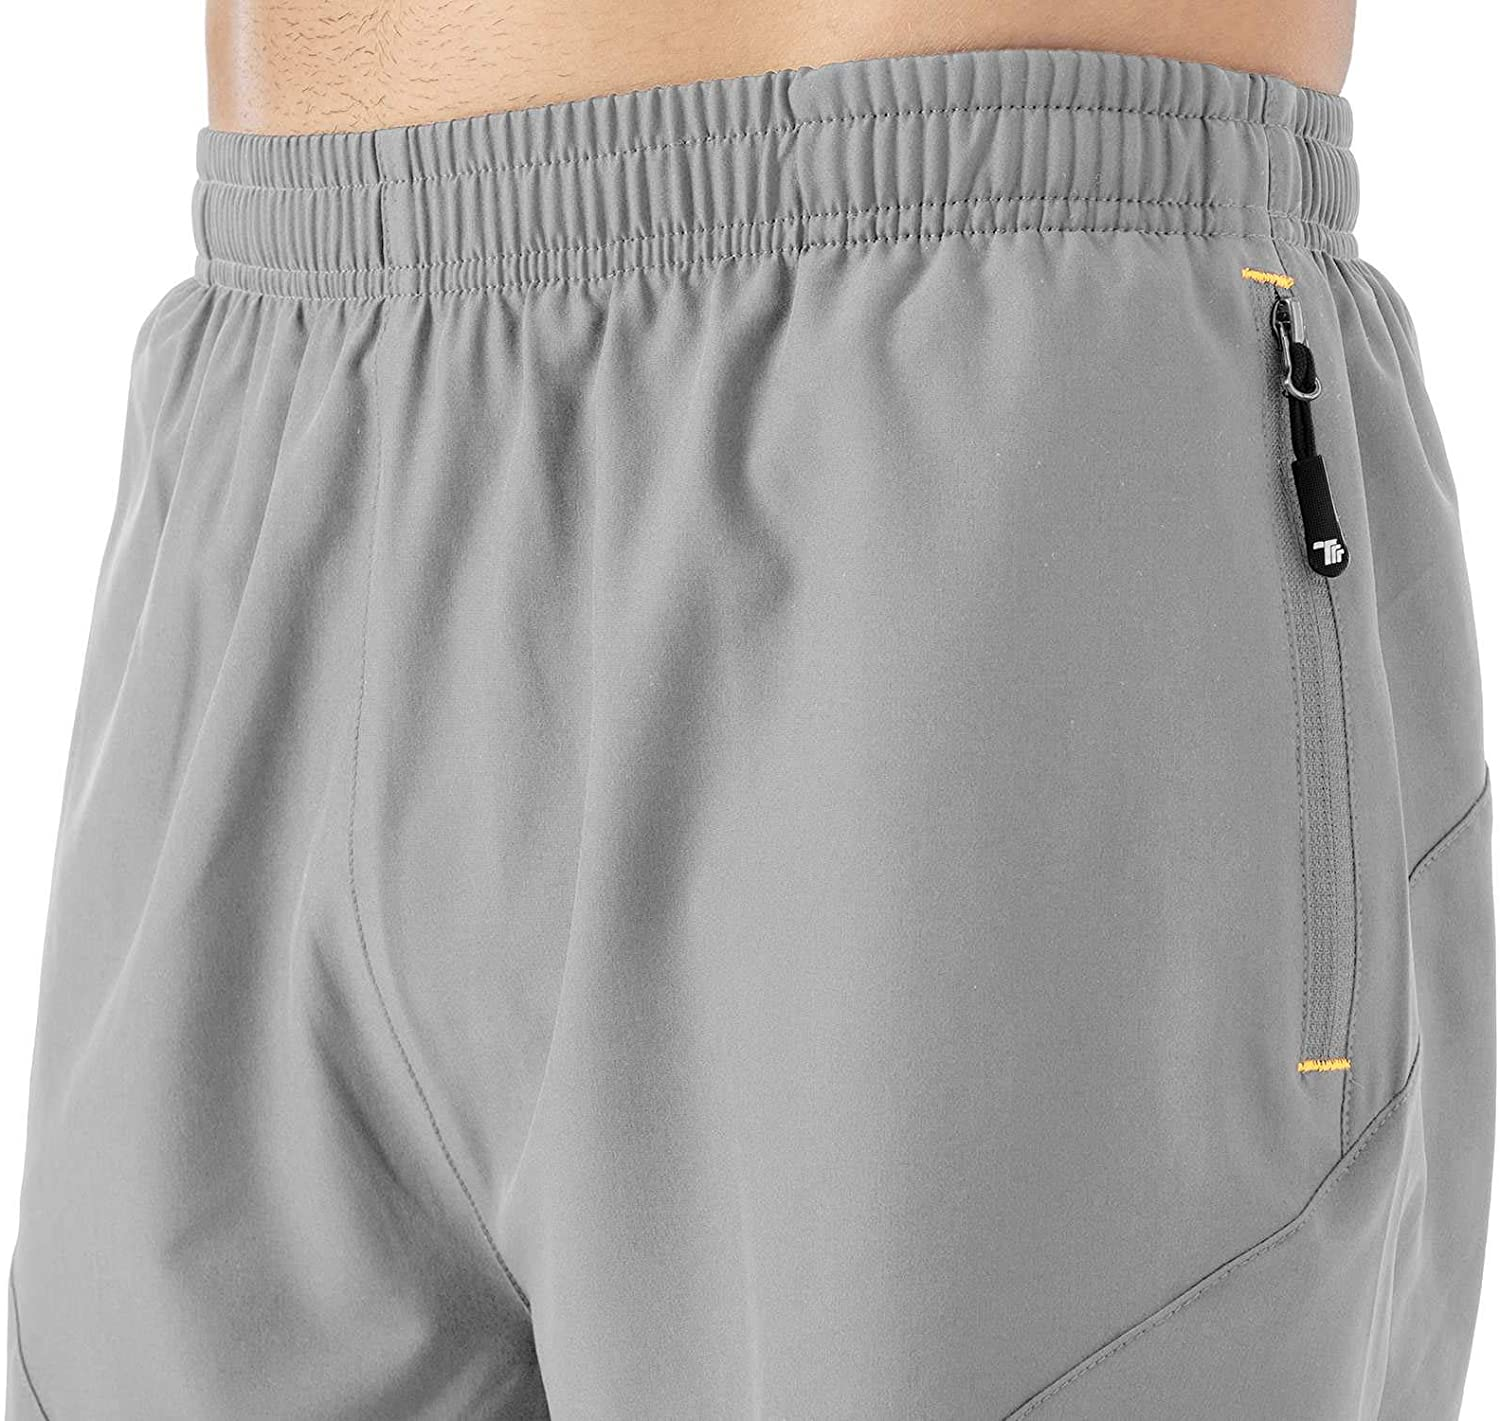 Rdruko Mens 2 in 1 Workout Running Shorts Quick Dry Lightweight Gym Shorts with Mesh Liner